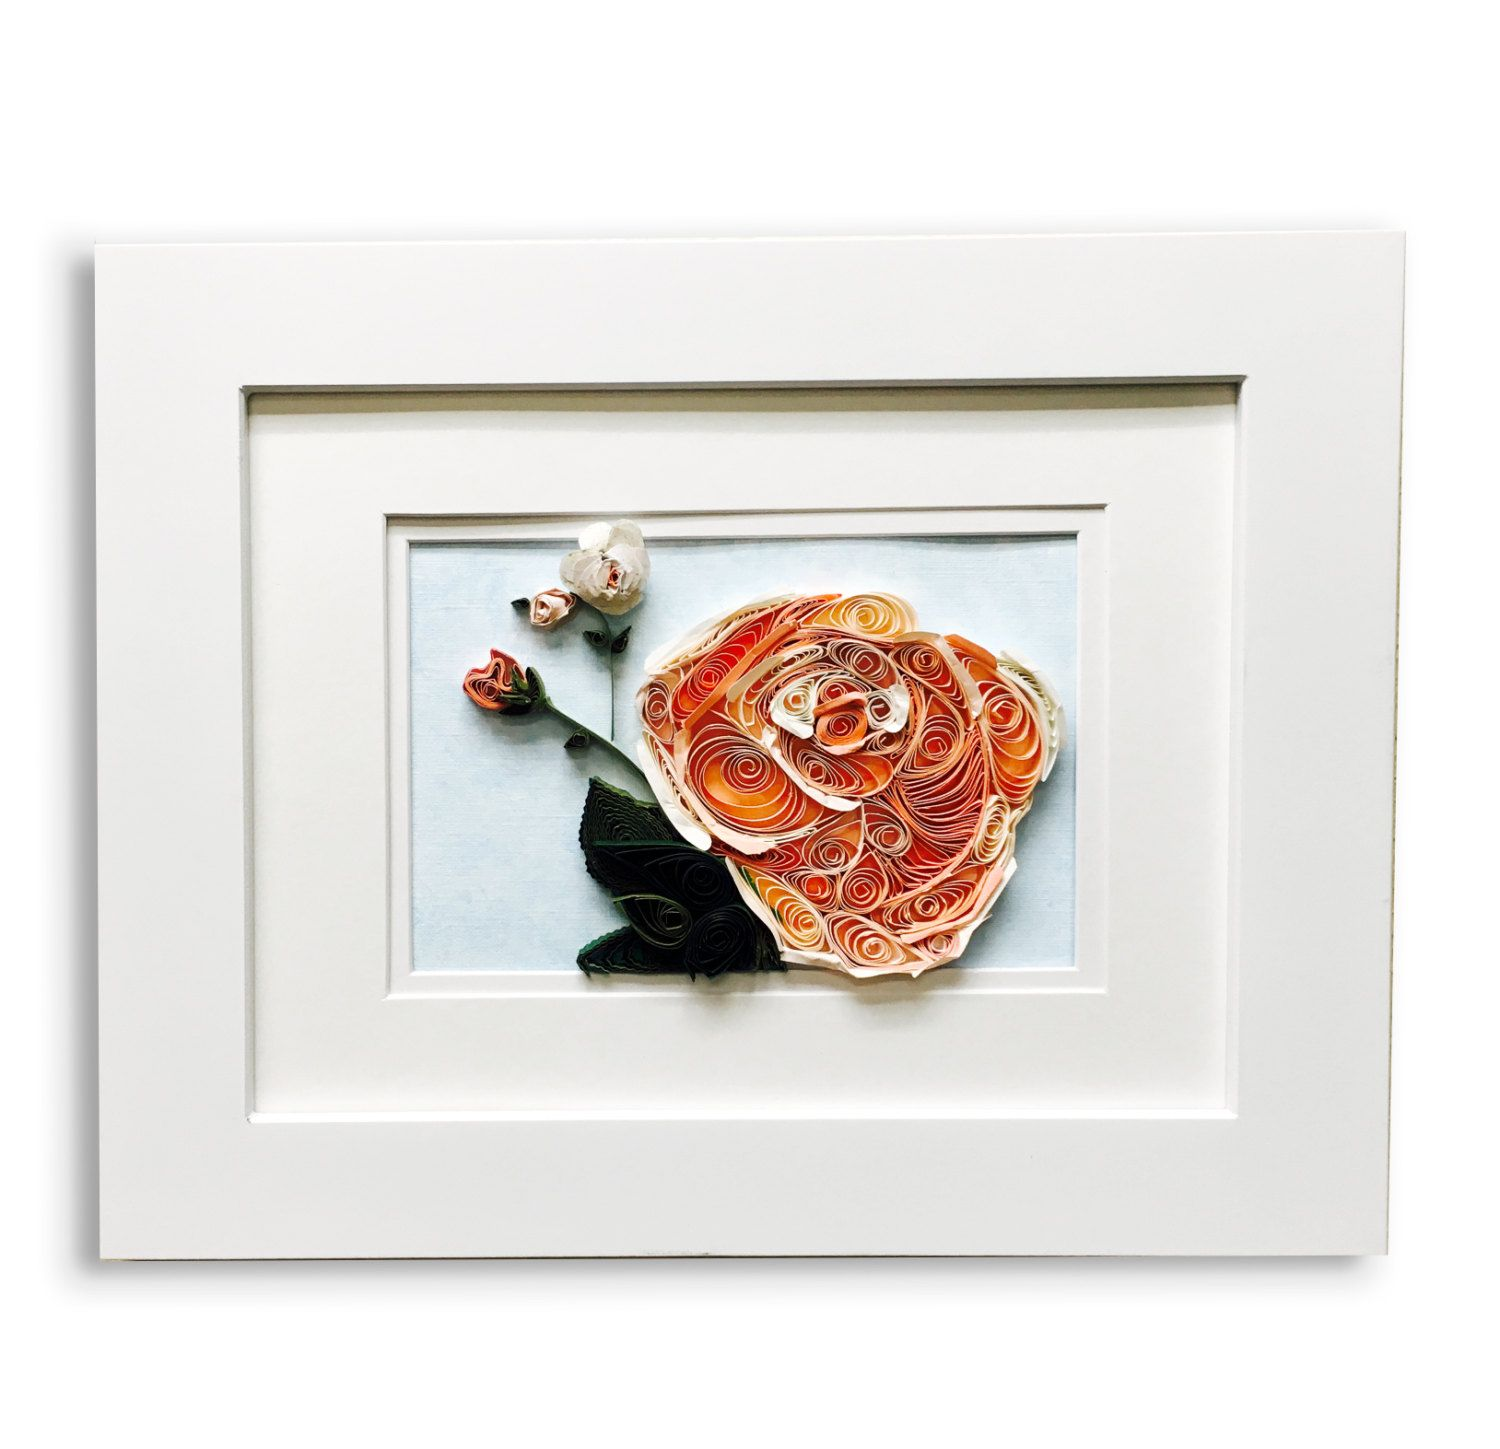 peach quilled roses - quilled mosaic art - mosaic quilled art ...